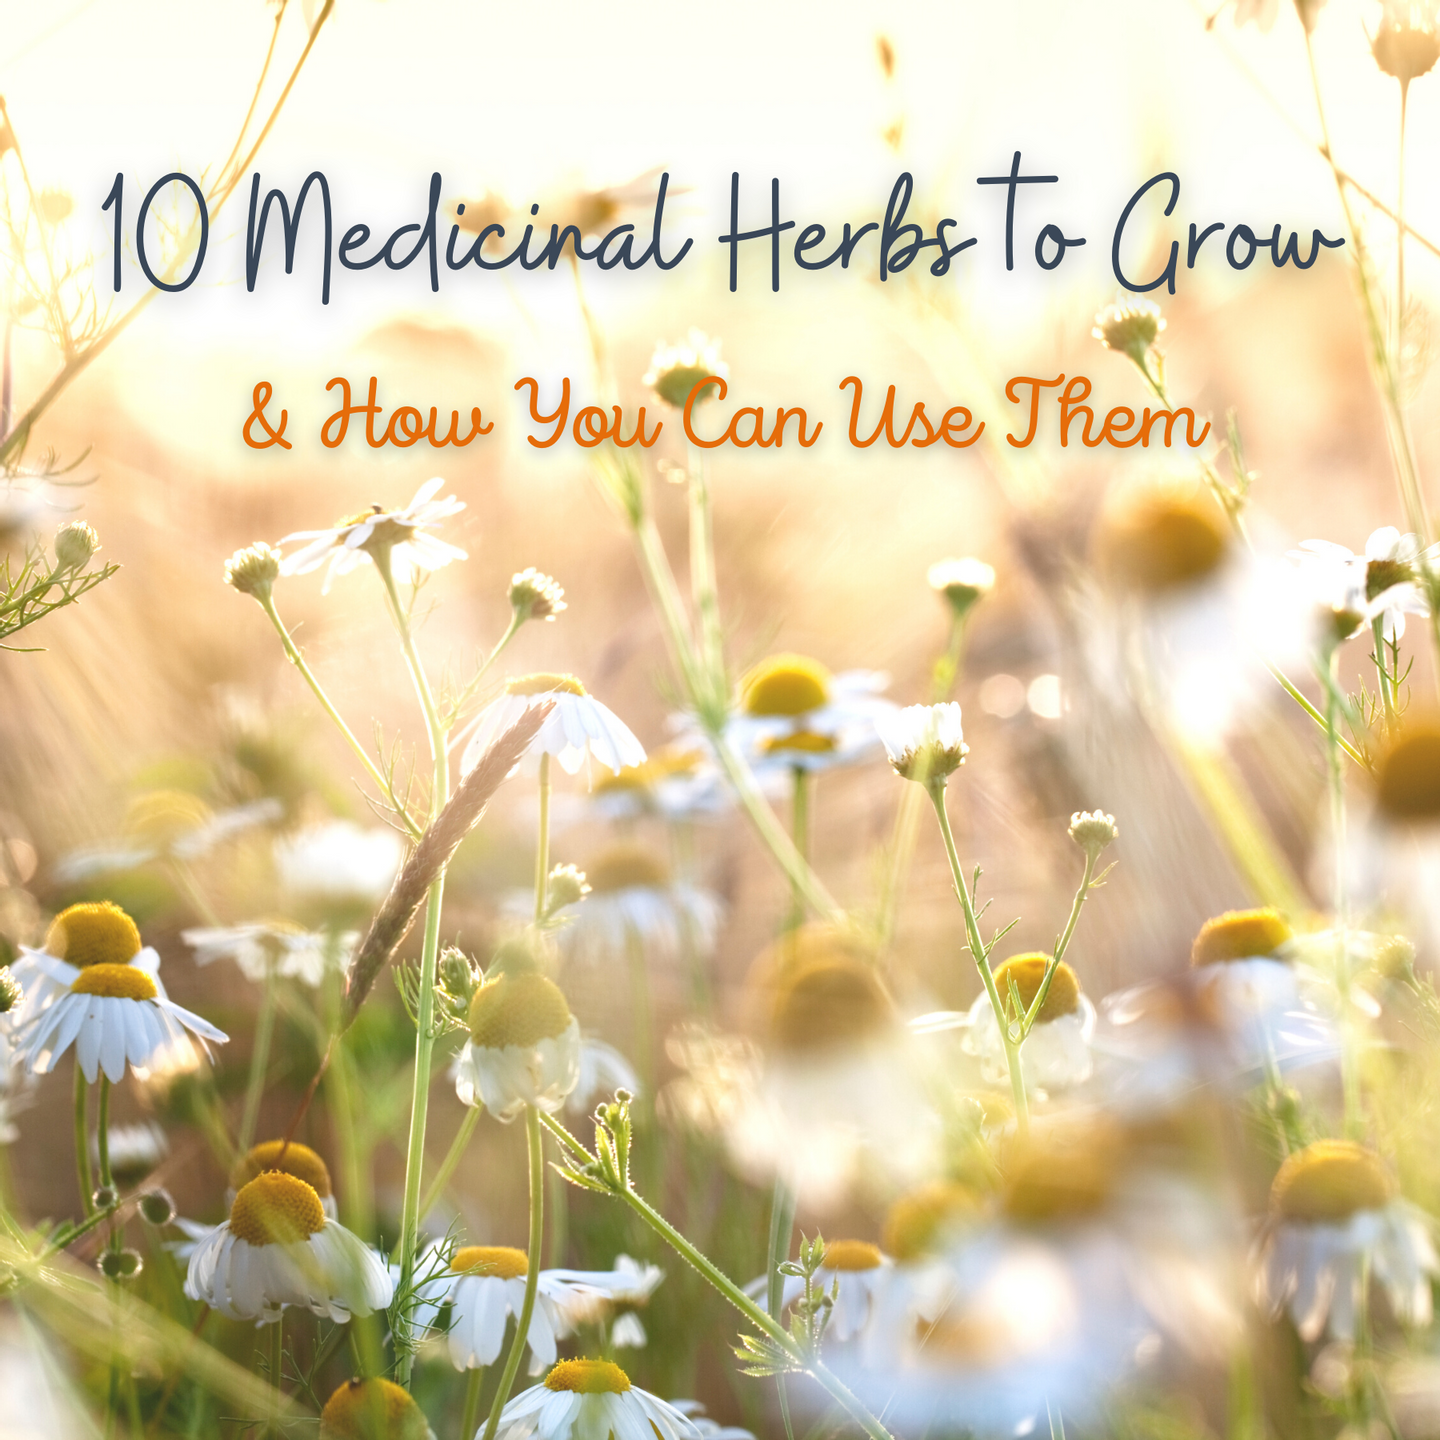 10 Medicinal Herbs to Grow & How You Can Use Them